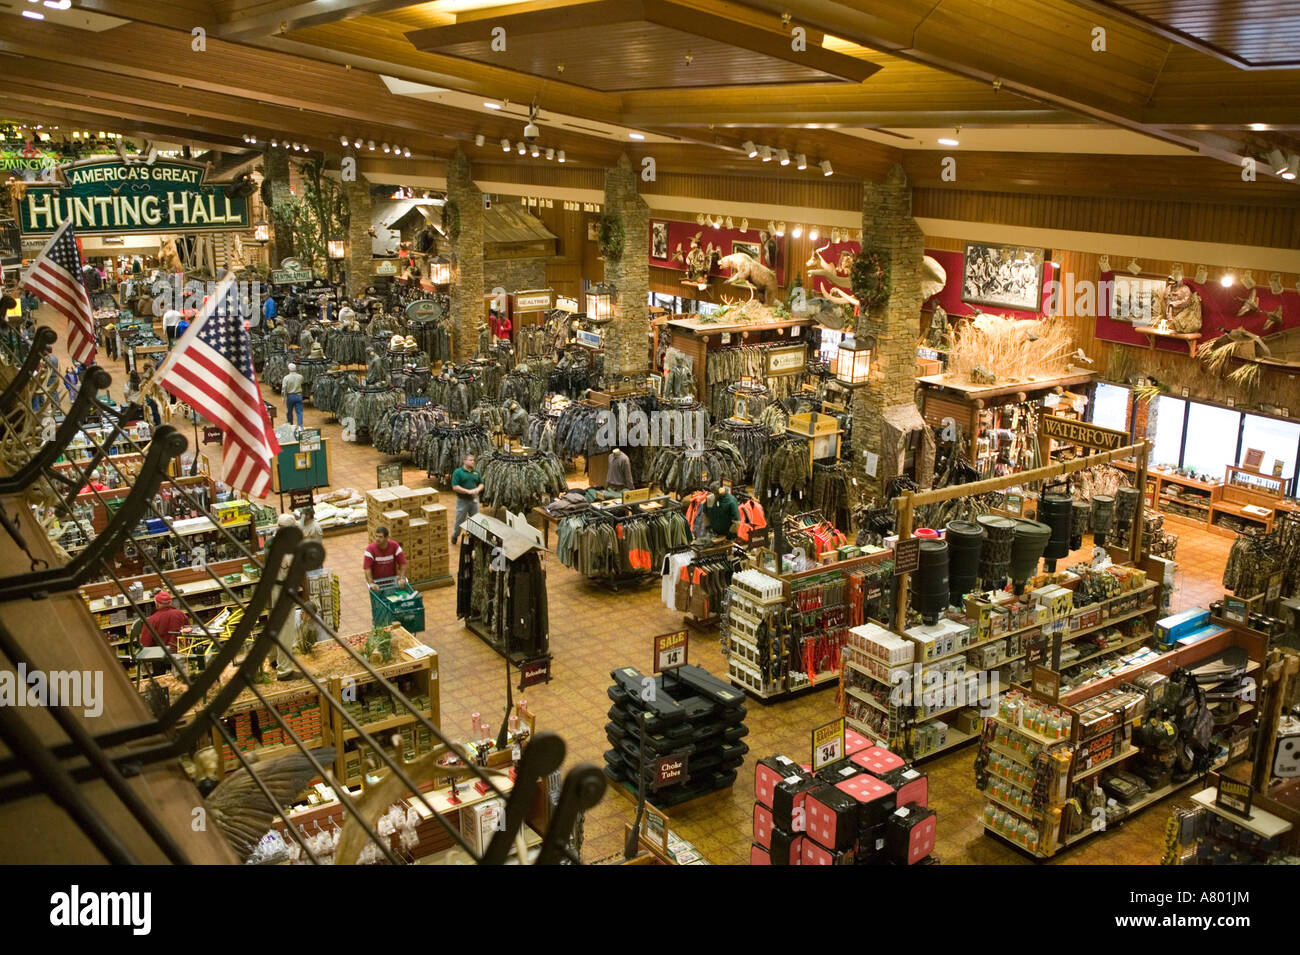 bass pro shop store im genes de stock bass pro shop store fotos de stock alamy. Black Bedroom Furniture Sets. Home Design Ideas